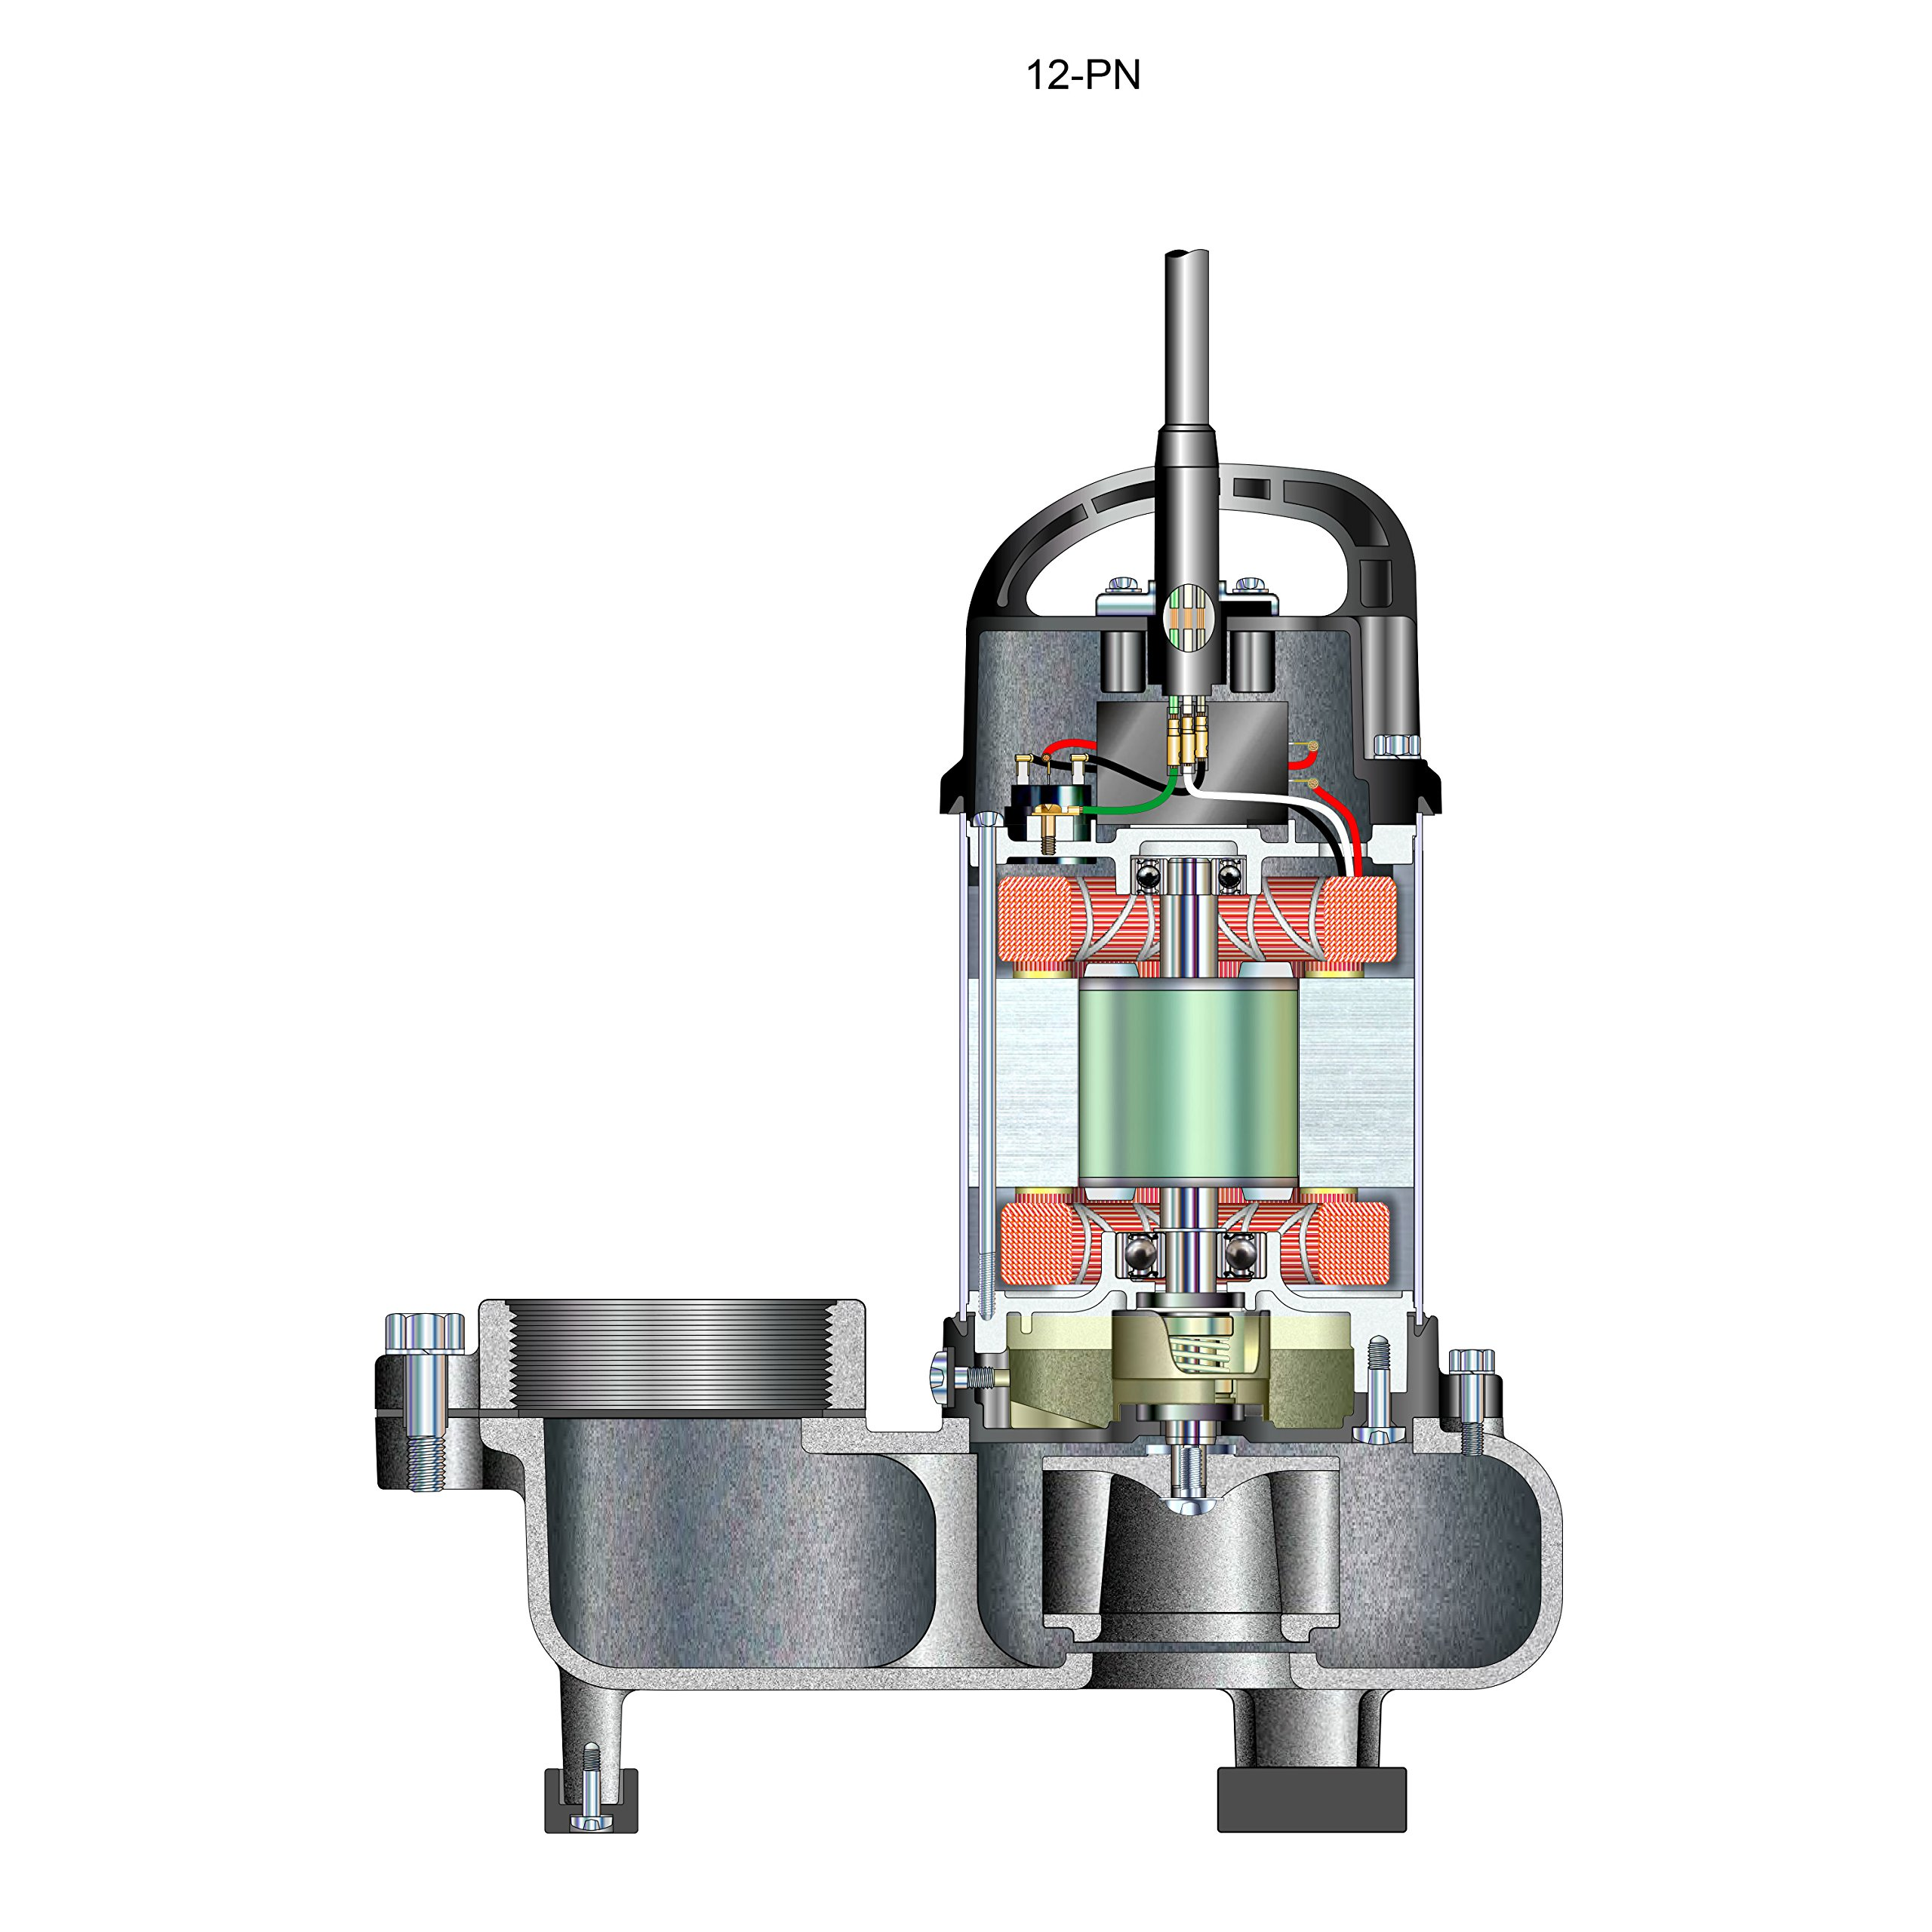 Aquascape 30391 Tsurumi 12PN Submersible Pump for Ponds, Skimmer Filters, and Pondless Waterfalls, 10,000 GPH by Tsurumi (Image #4)